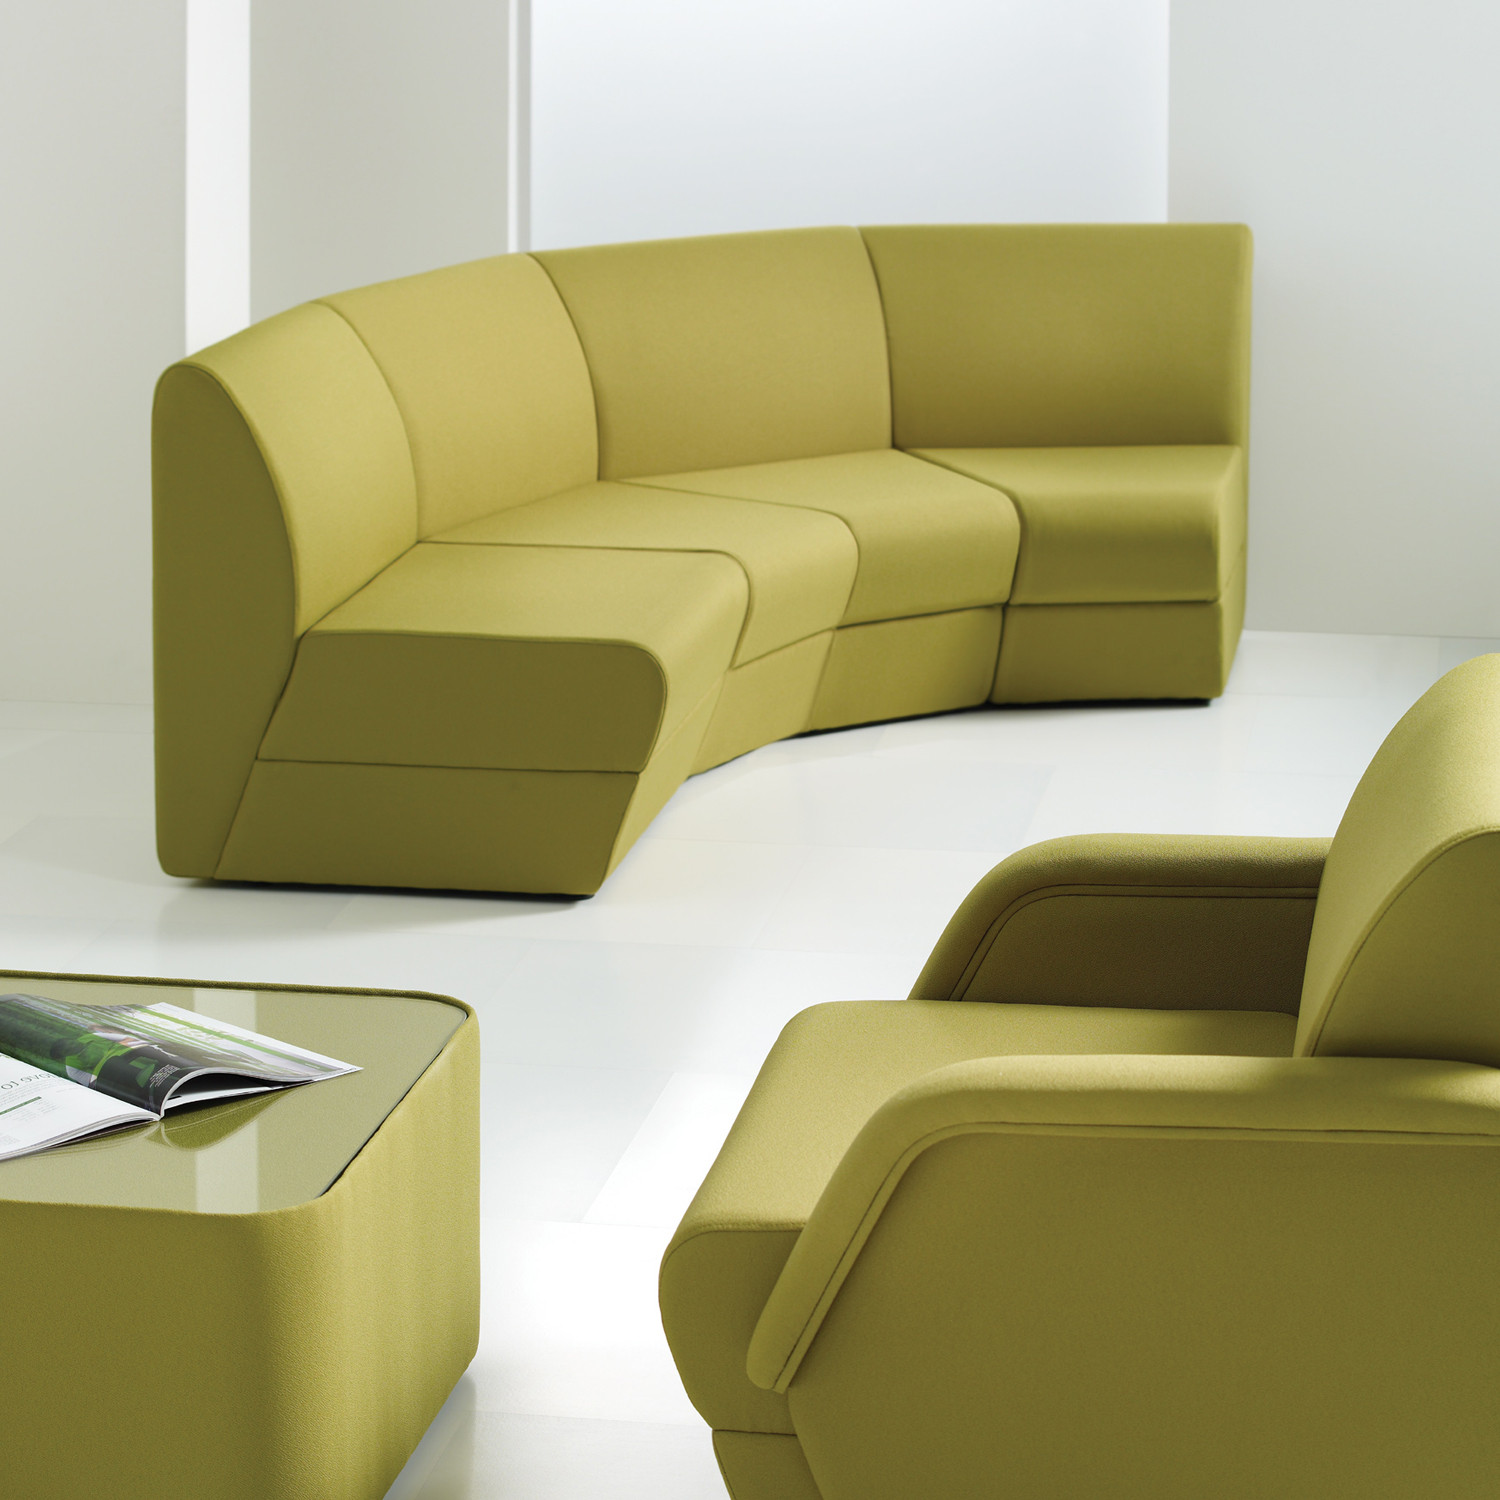 Series 9500 Soft Sofa